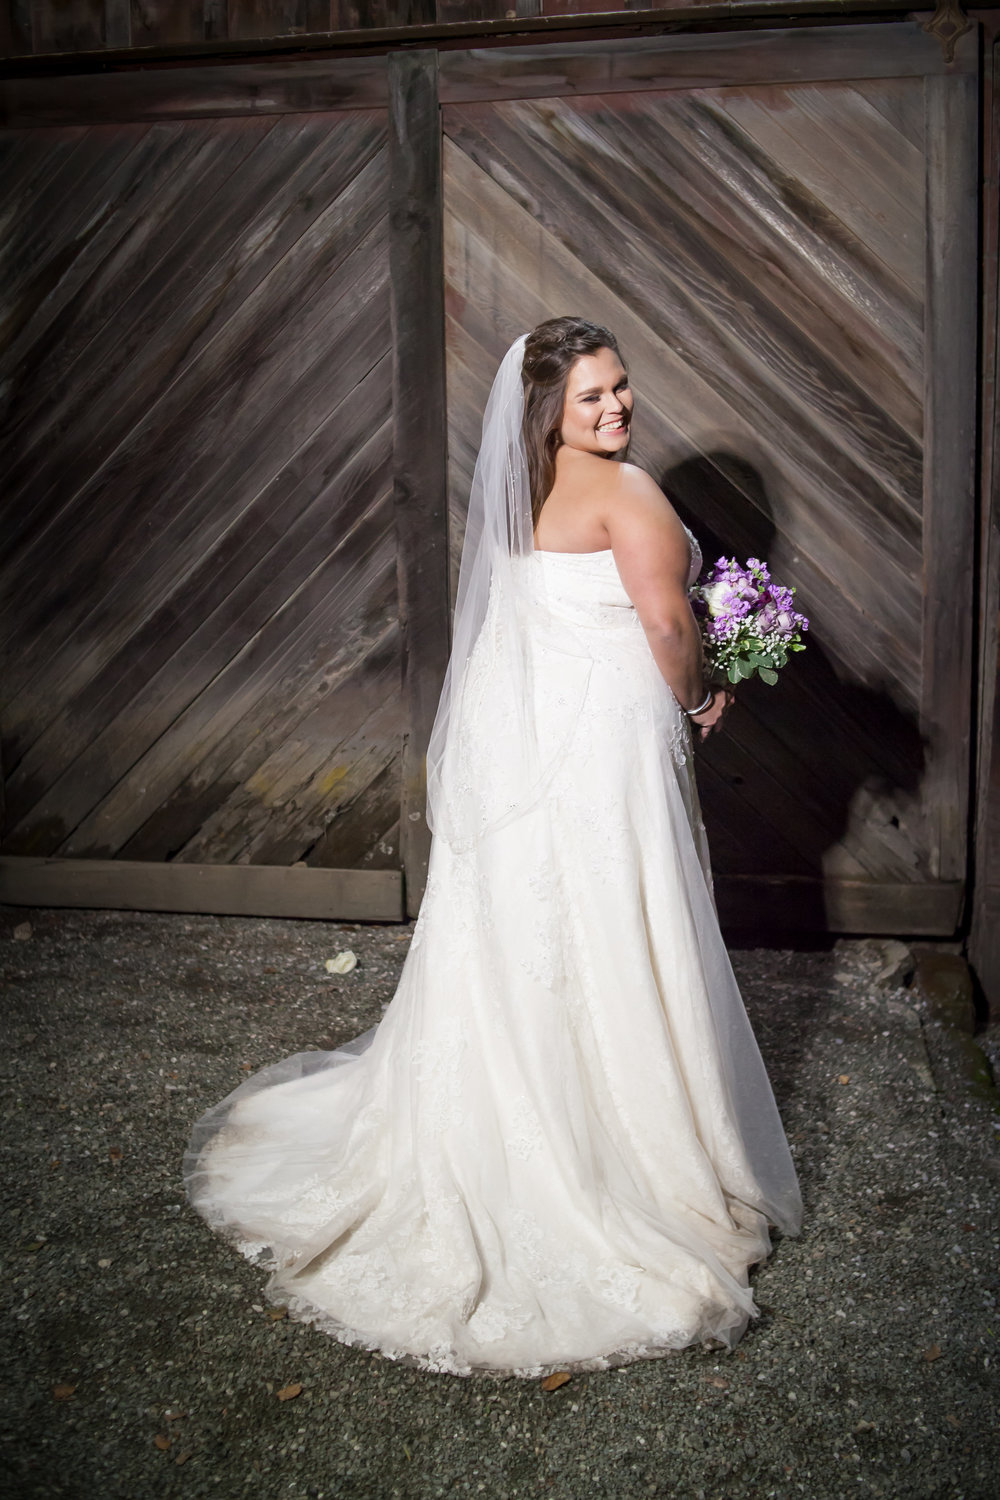 bride wearing veil and strapless floor length wedding gown with small train makeup by kim baker beauty san jose california makeup artist at picchetti winery in cuptertino